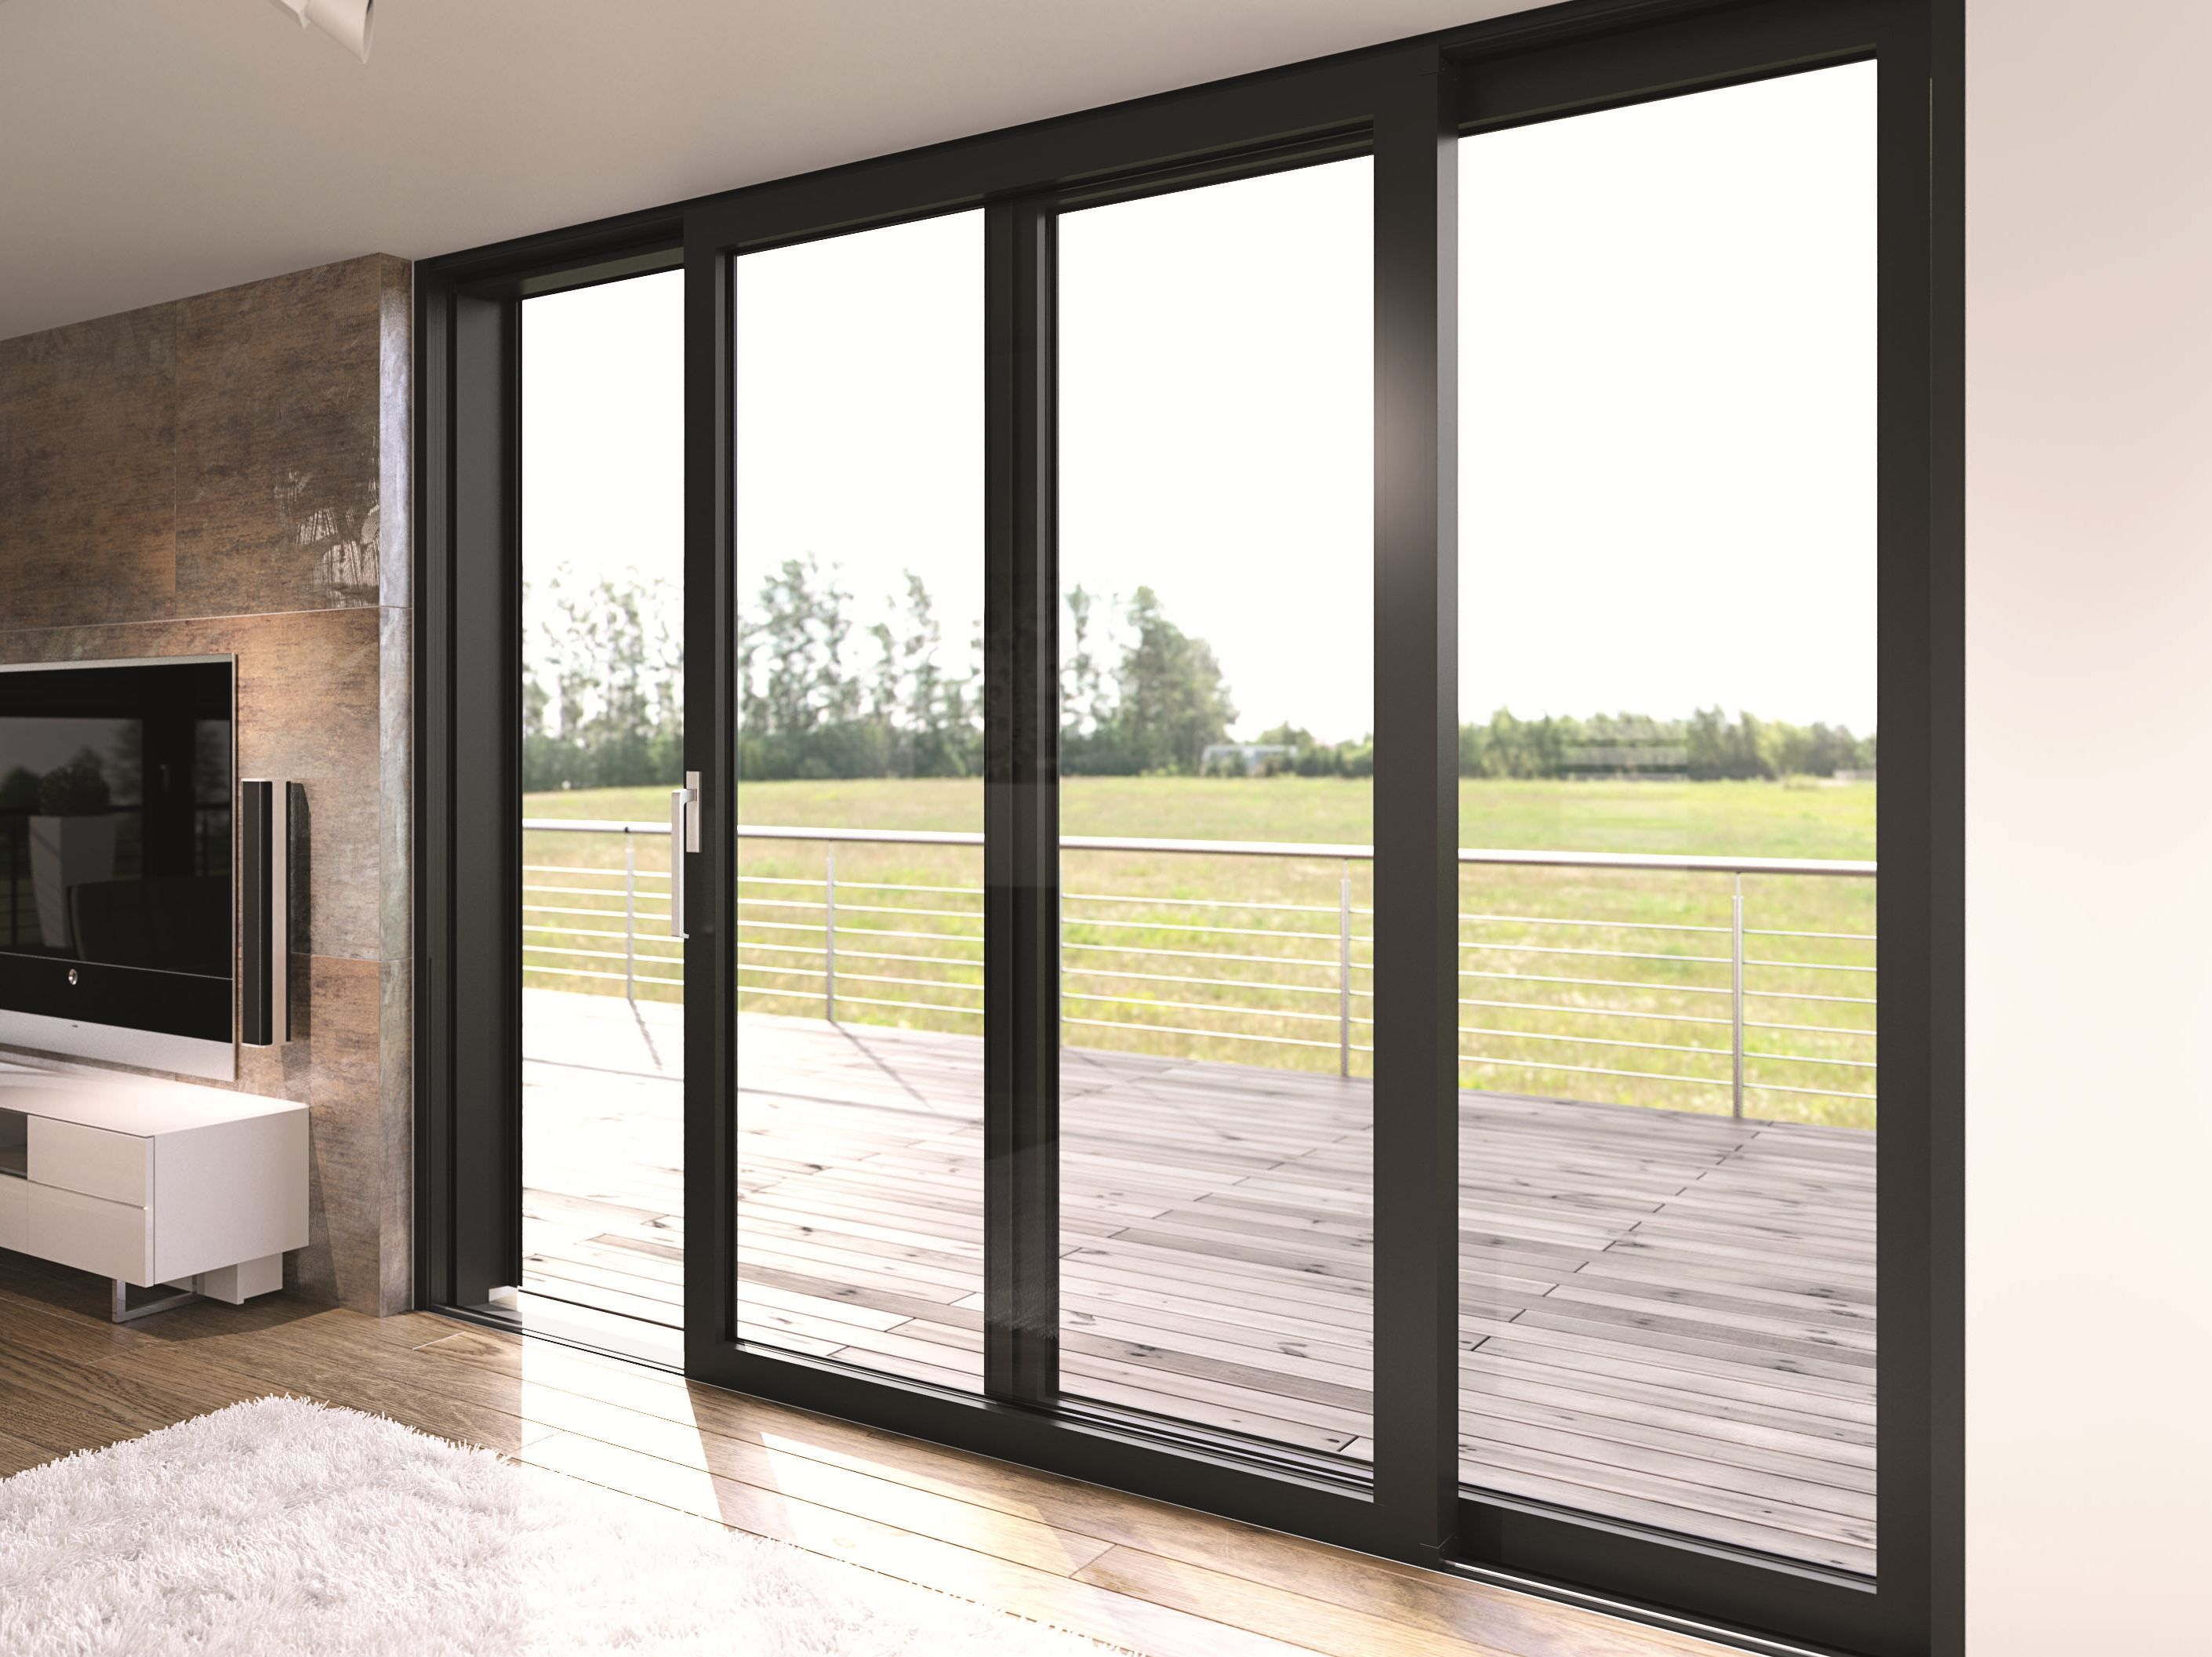 Aluminium patio door s 77 by heroal johann henkenjohann for Aluminium patio doors